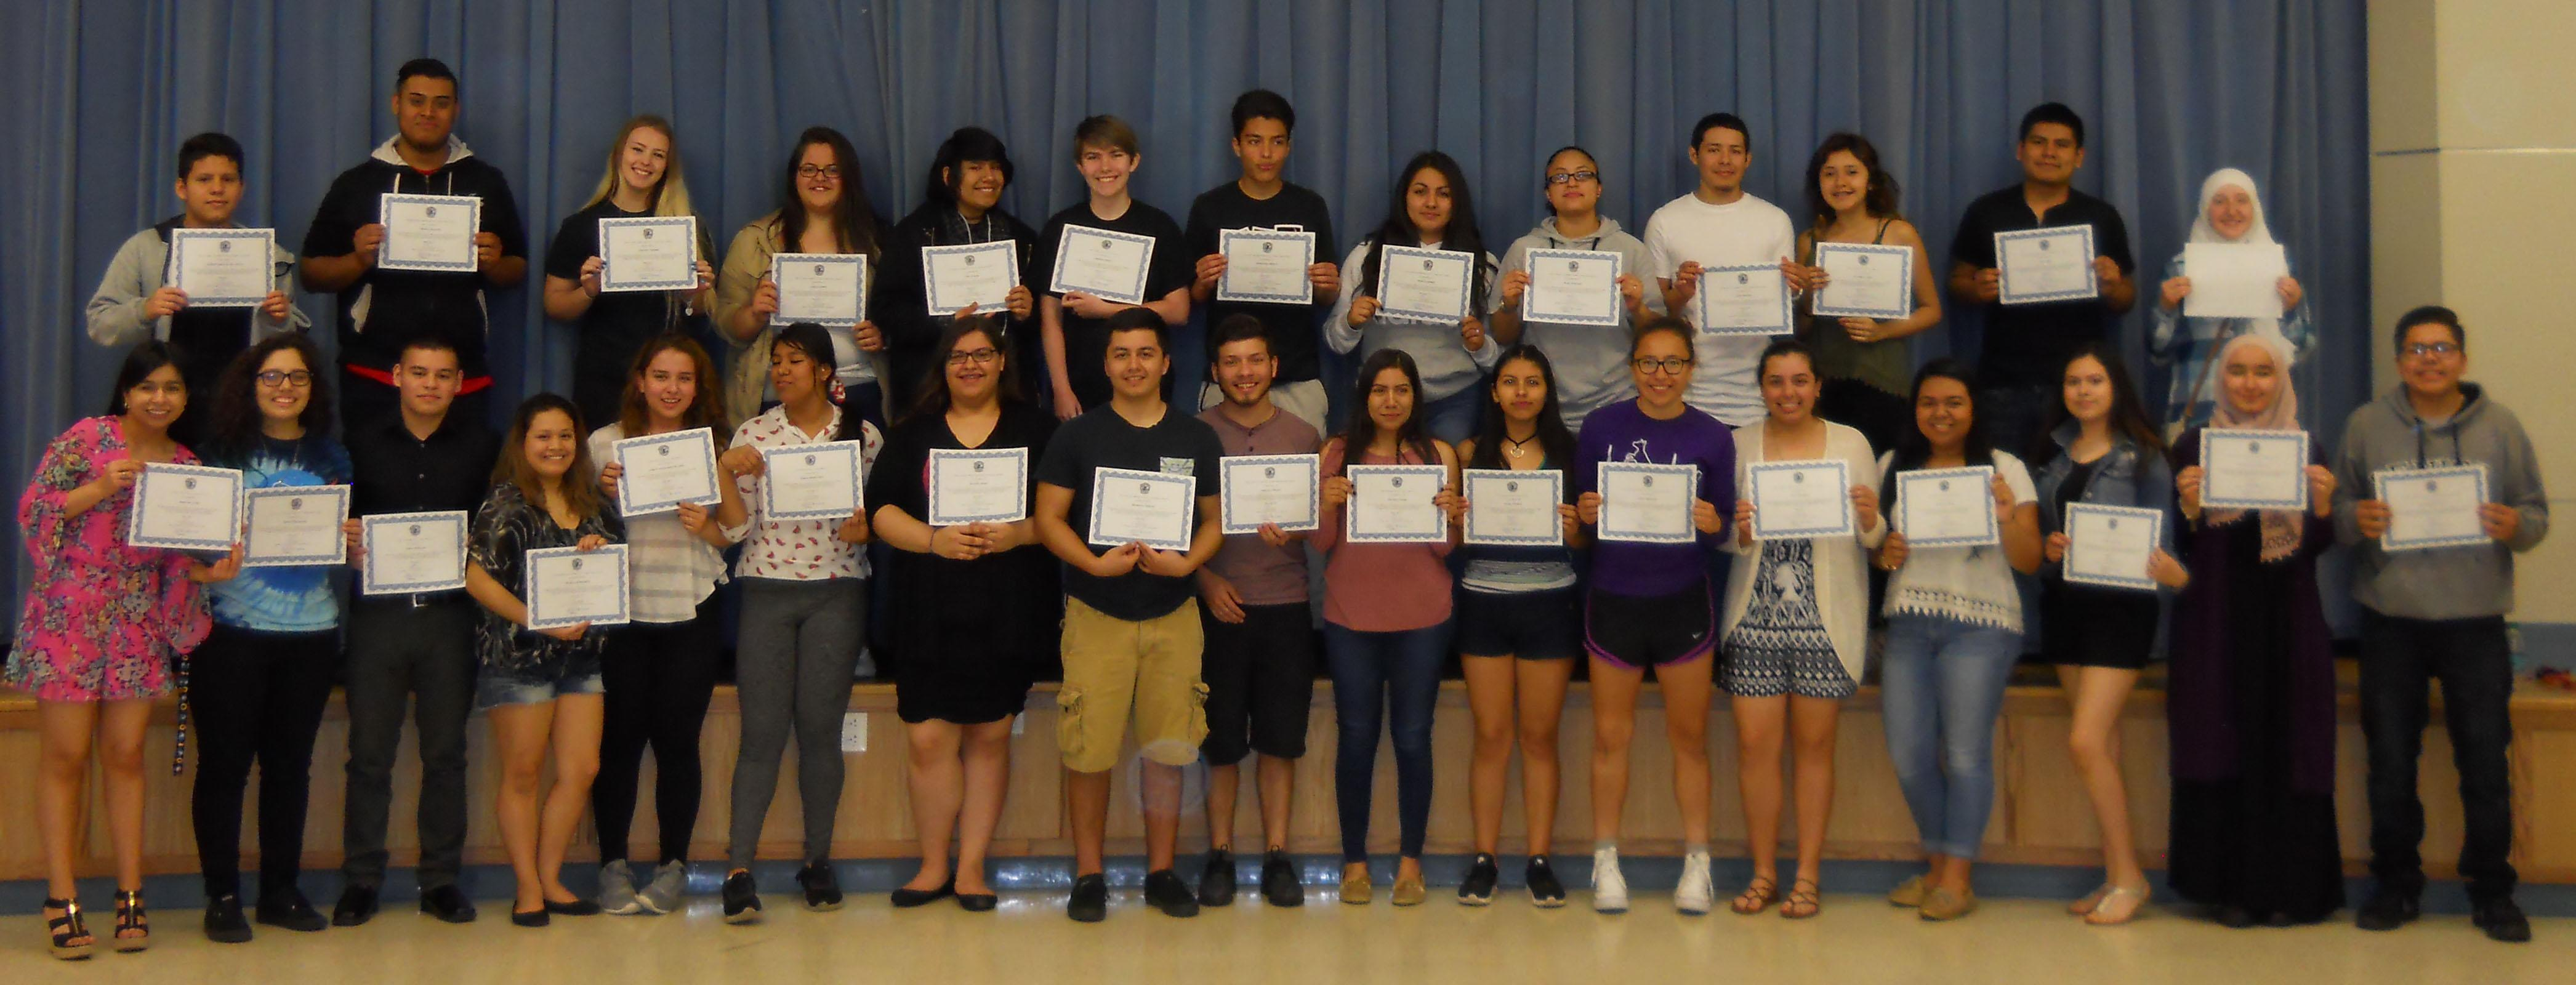 Willowbrook students earn state-level world language recognition